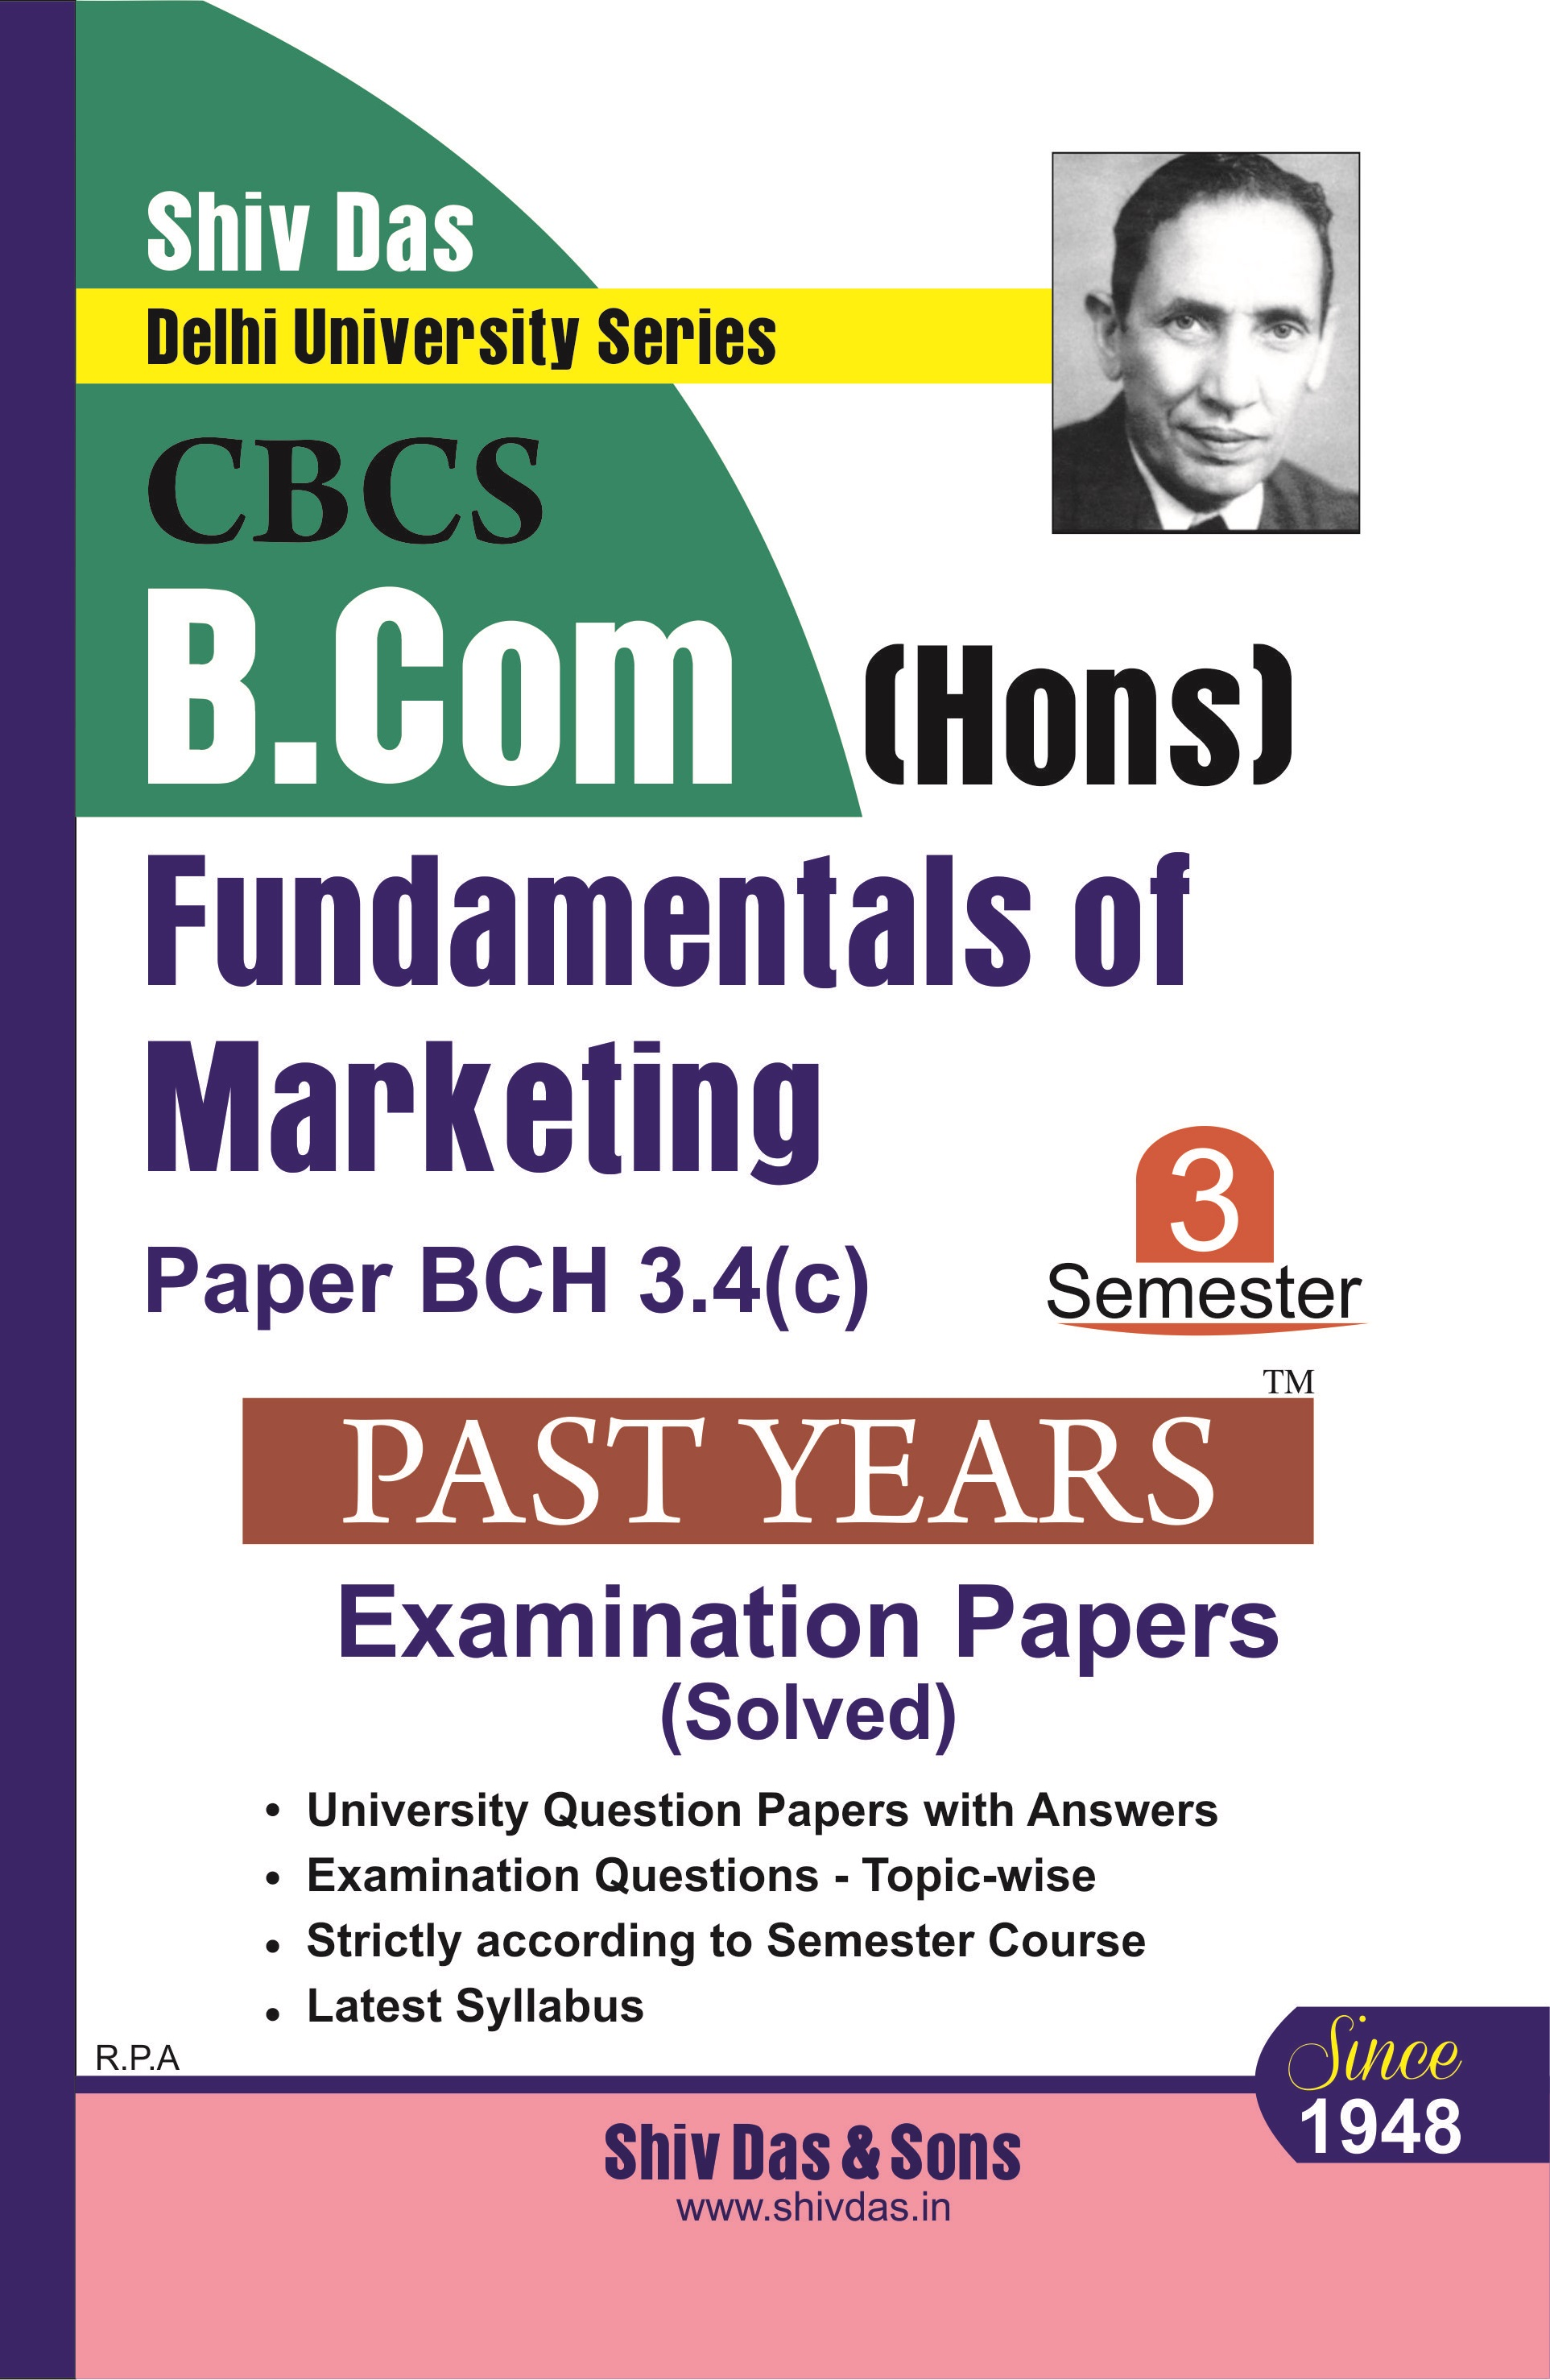 Fundamentals of Marketing for B.Com Hons Semester 3 for Delhi University by Shiv Das